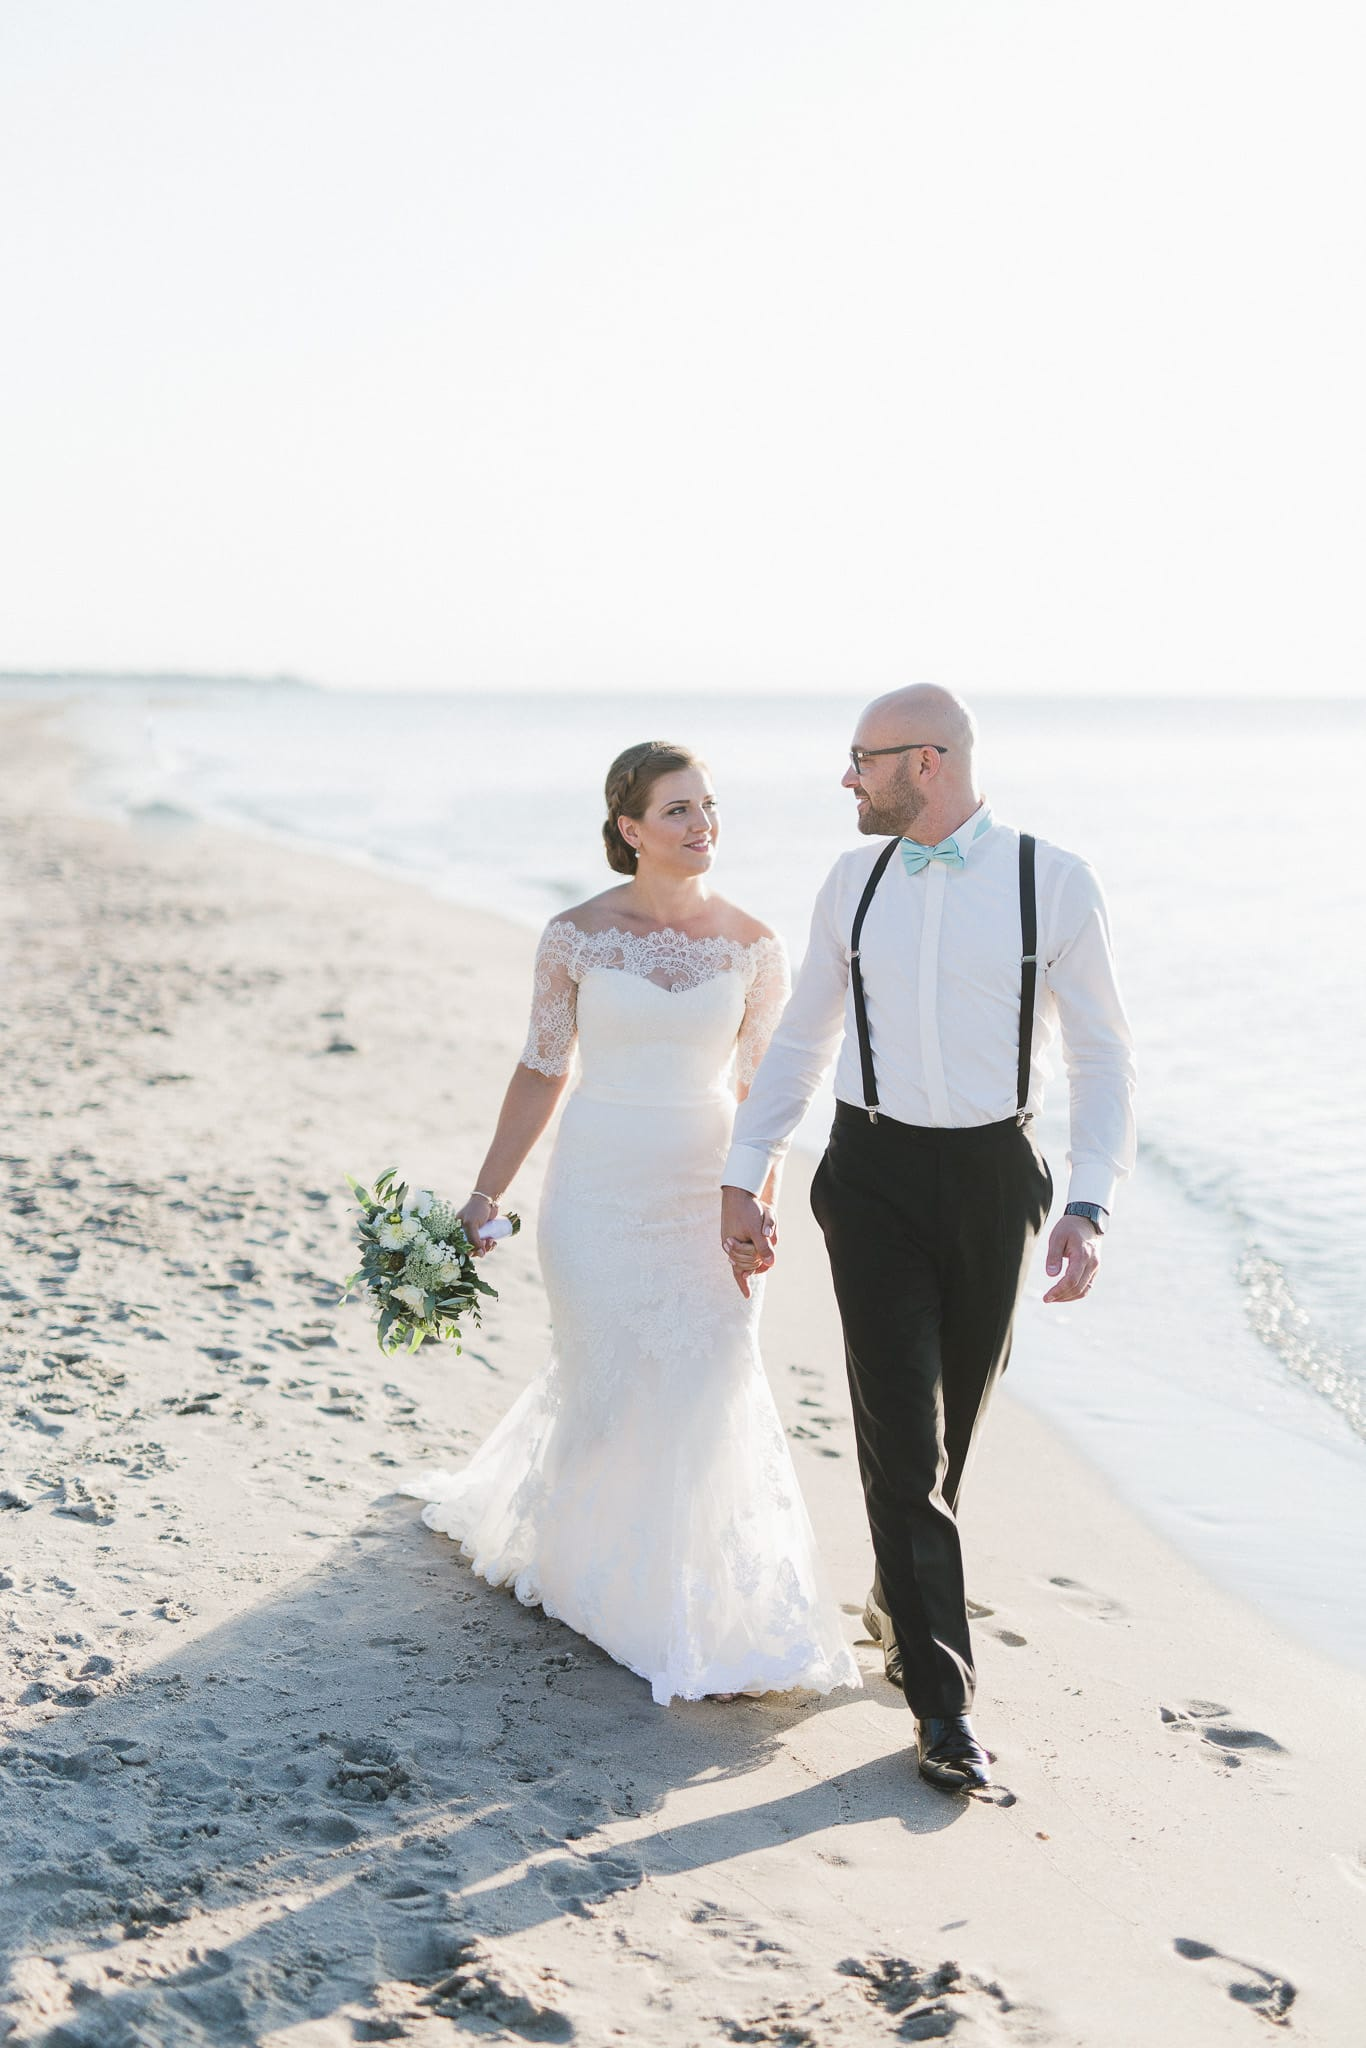 After Wedding Shooting Ostsee